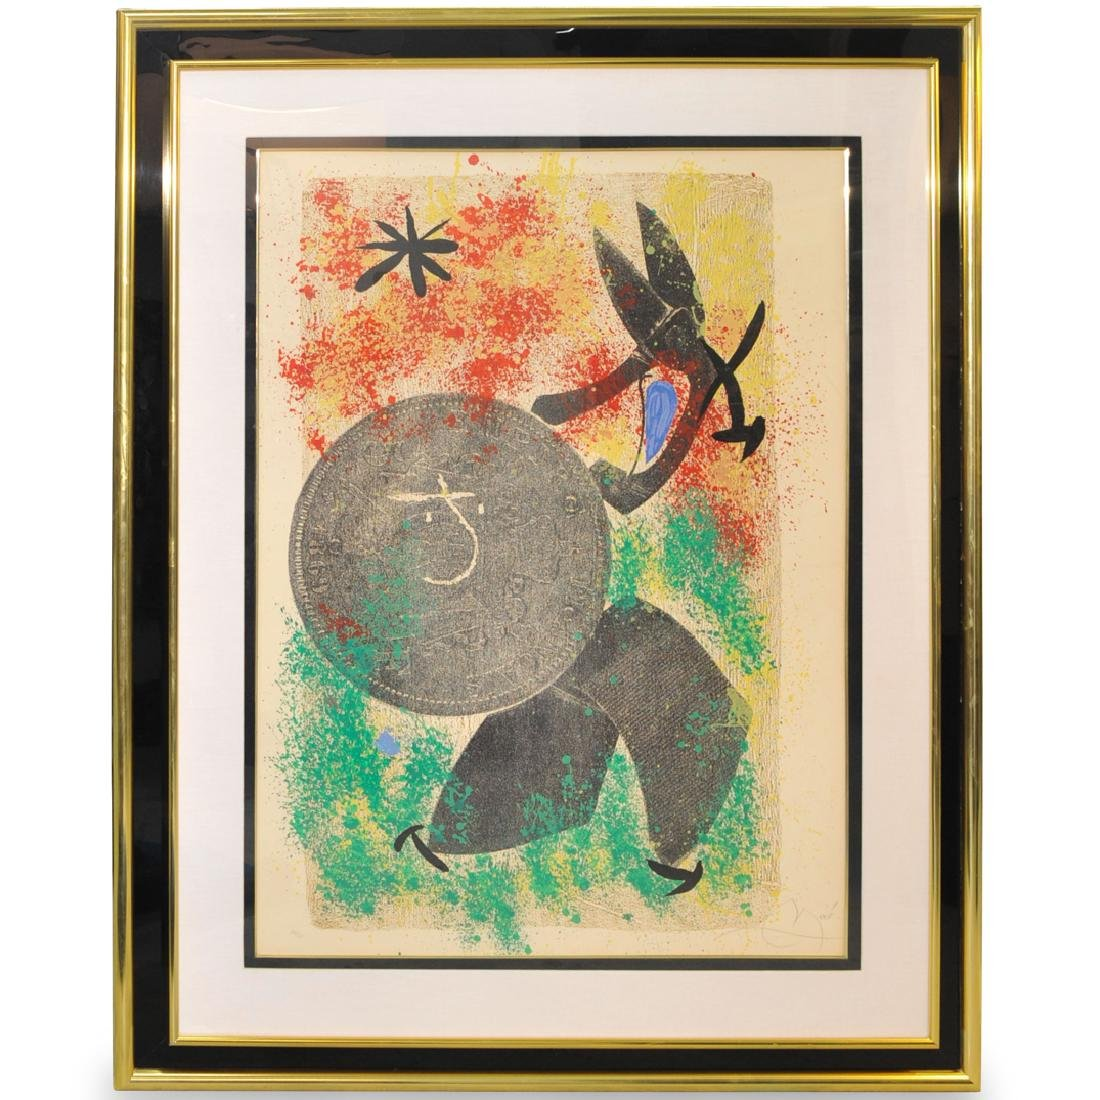 Joan Miro (Spanish, 1893-1983) Color Lithograph